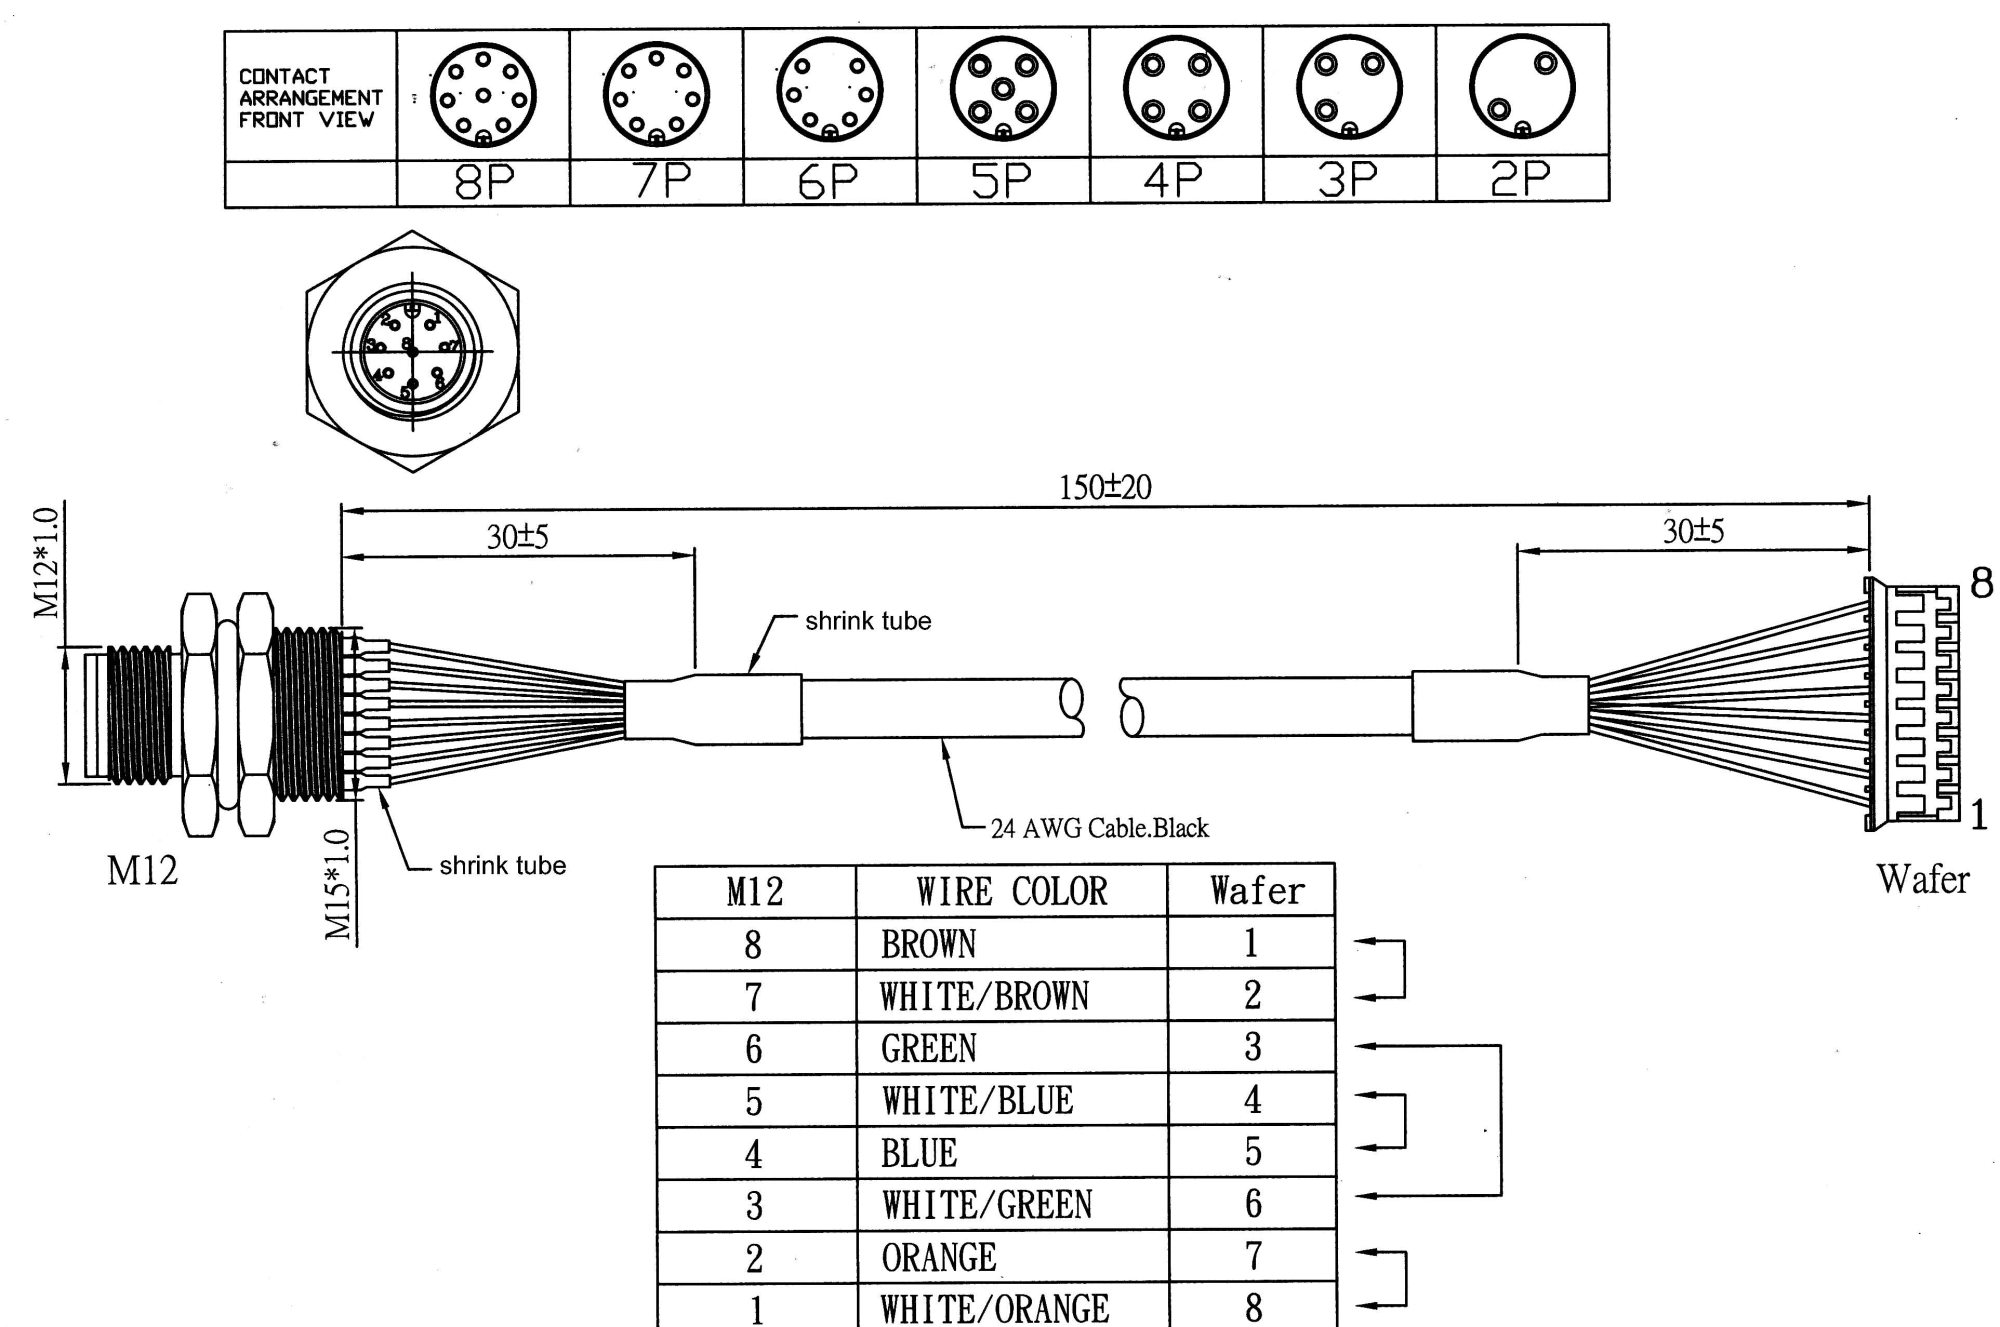 hight resolution of 4 pin m12 connector wiring diagram 8 pin connector wiring cat 6 rj45 wiring diagram